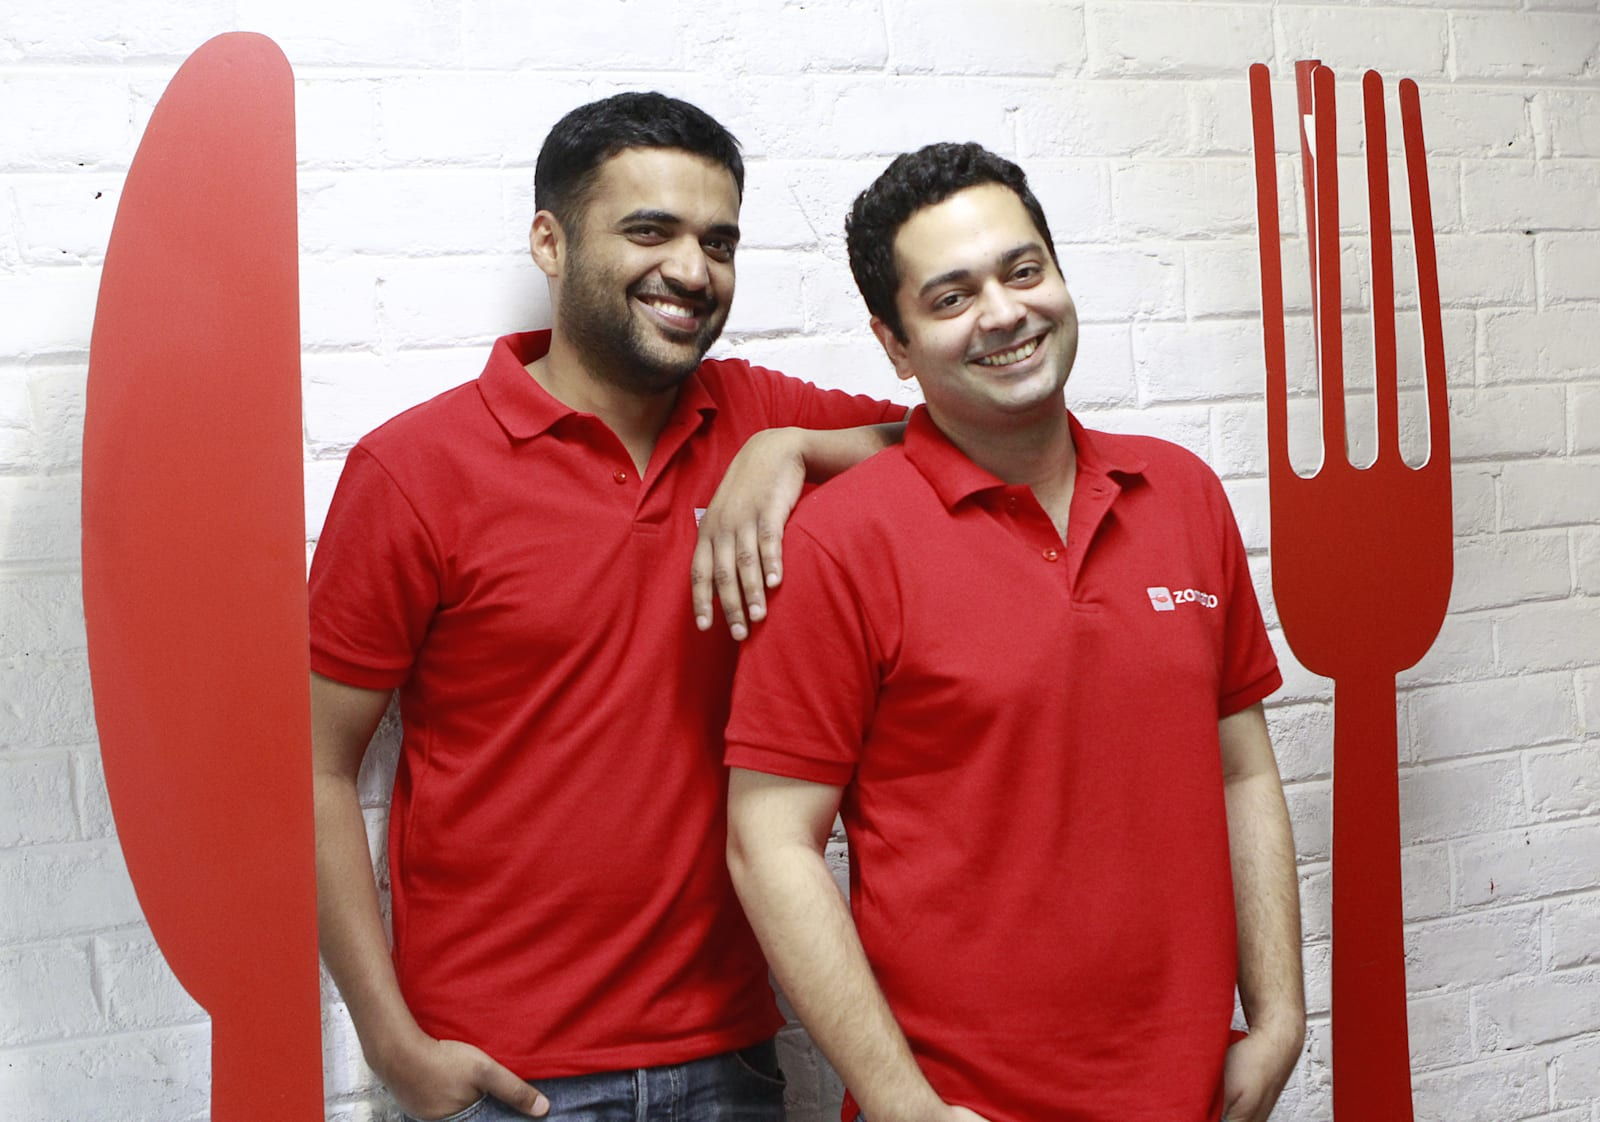 photo image Restaurant app Zomato hack leaves 17 million users exposed